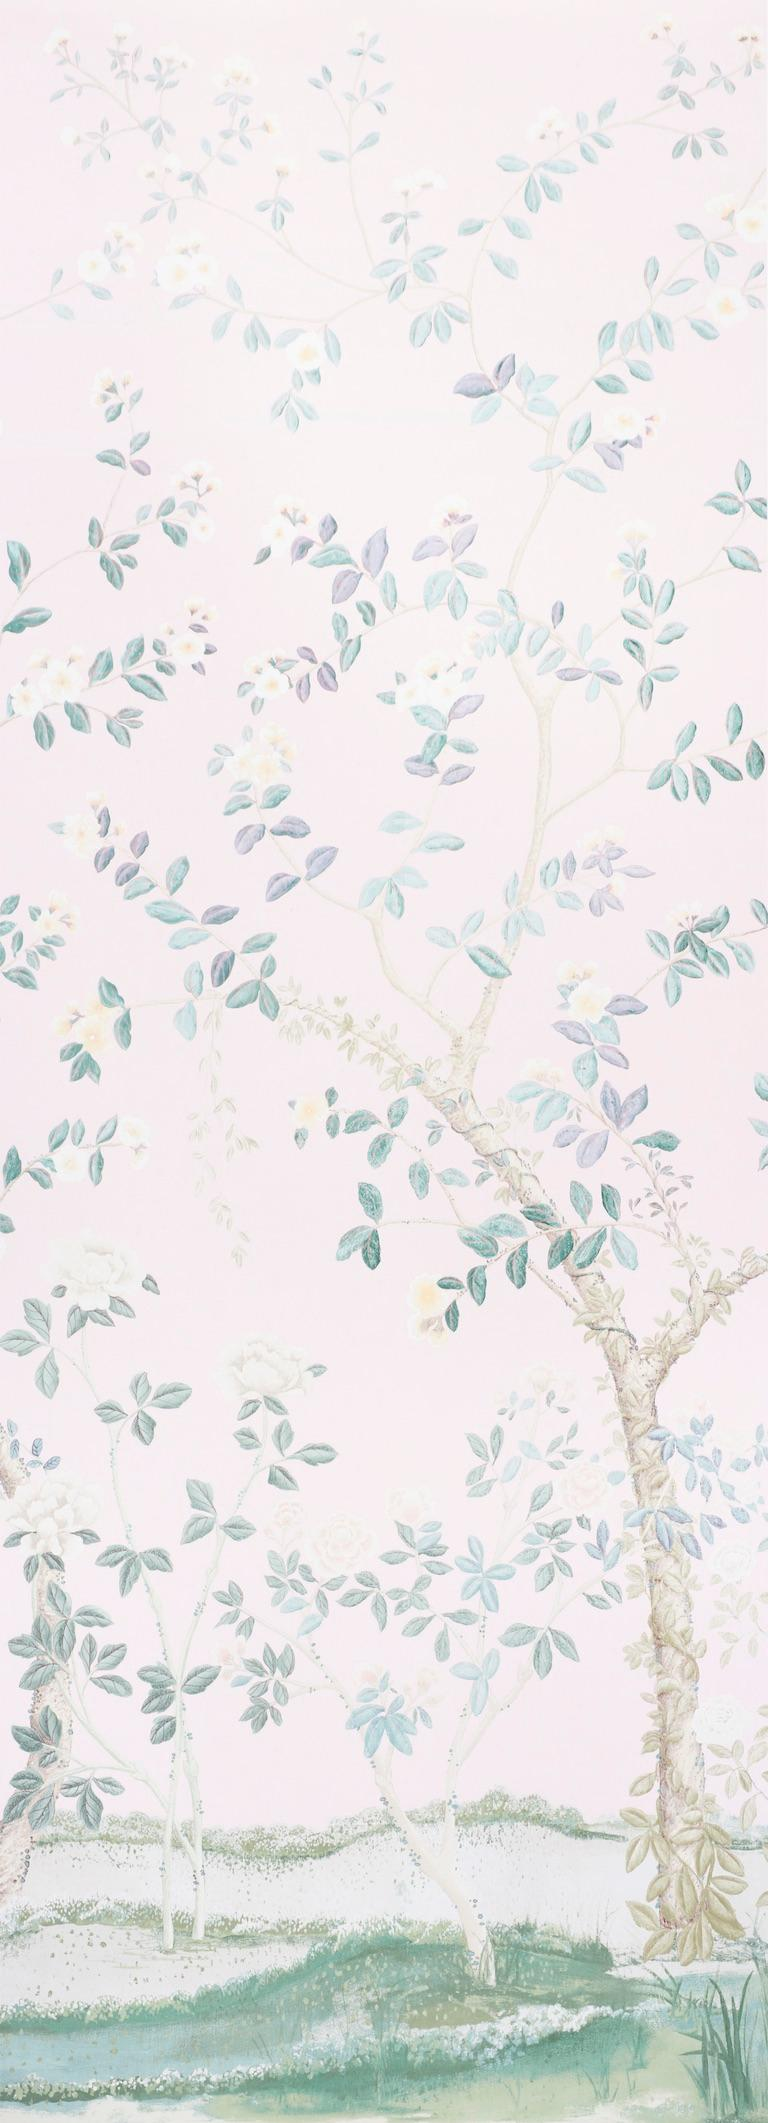 Schumacher Miles Redd Madame De Pompadour Blush Wallpaper Panel